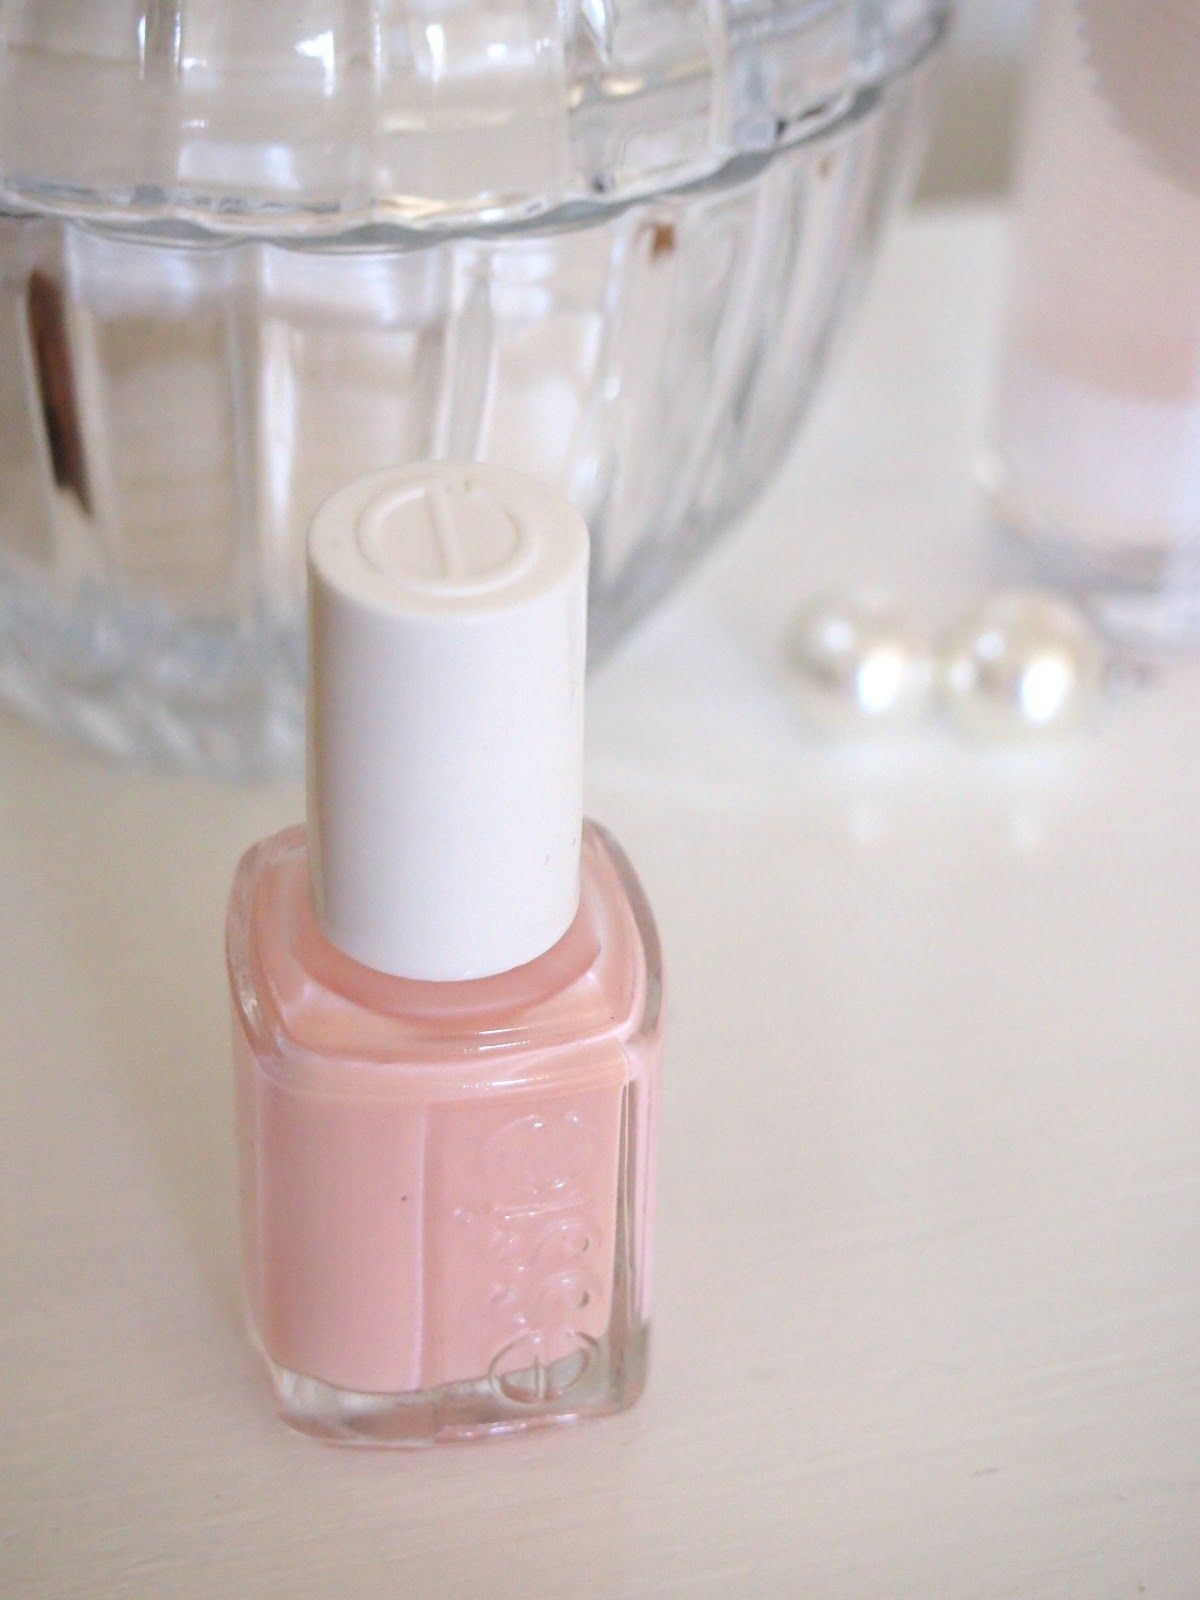 Essie, I like their nail polishes. They dry quickly and there are too many cute shades to choose from. I love neutral shades like this one.